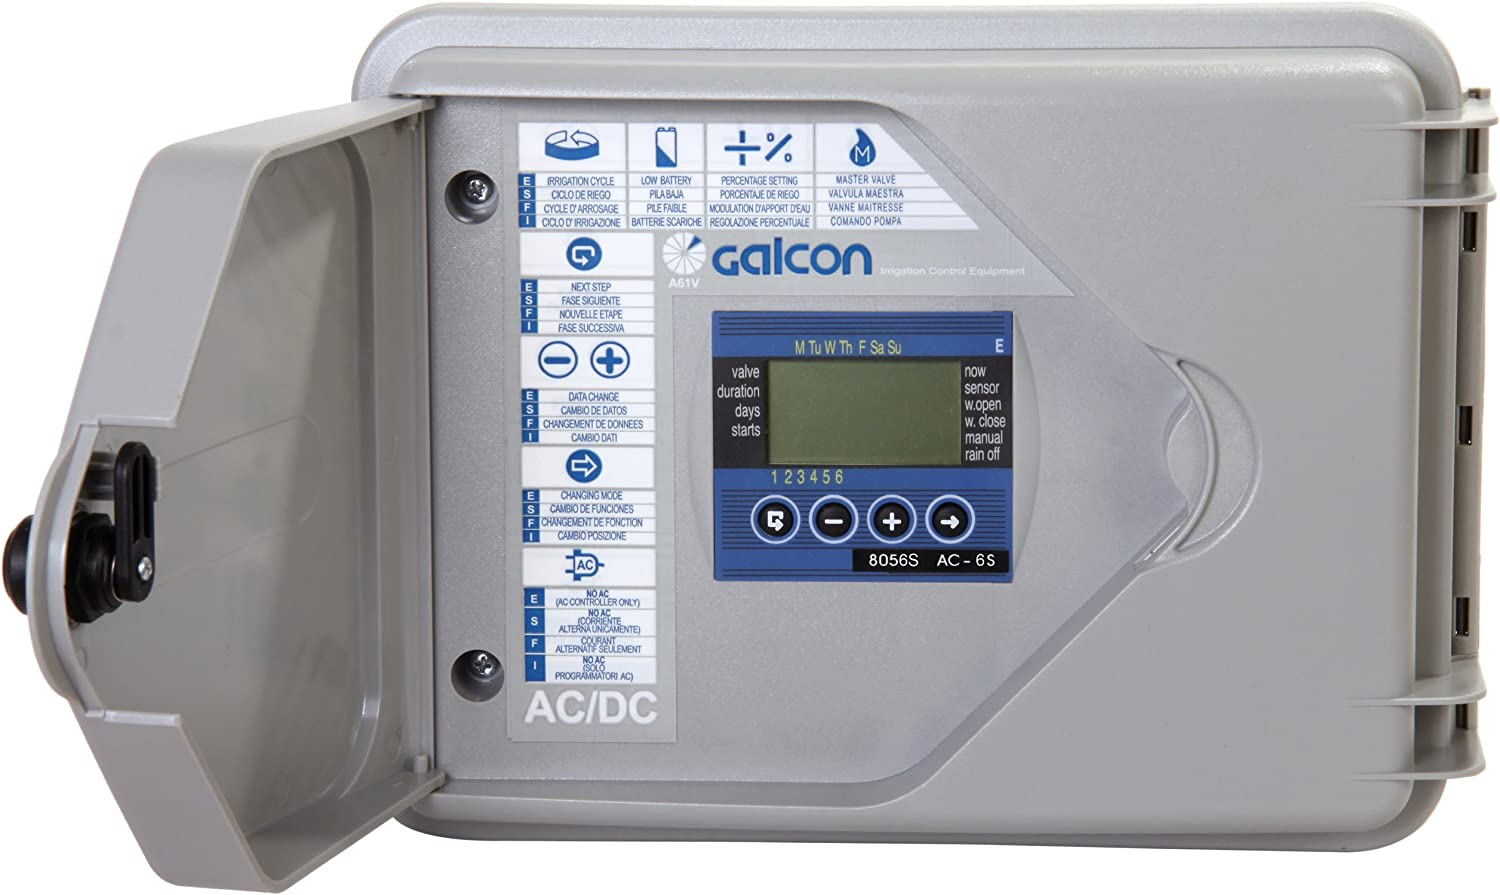 Galcon 8056S AC-6S 6-Station Indoor Irrigation or Outdoor Controller-Seconds Operation